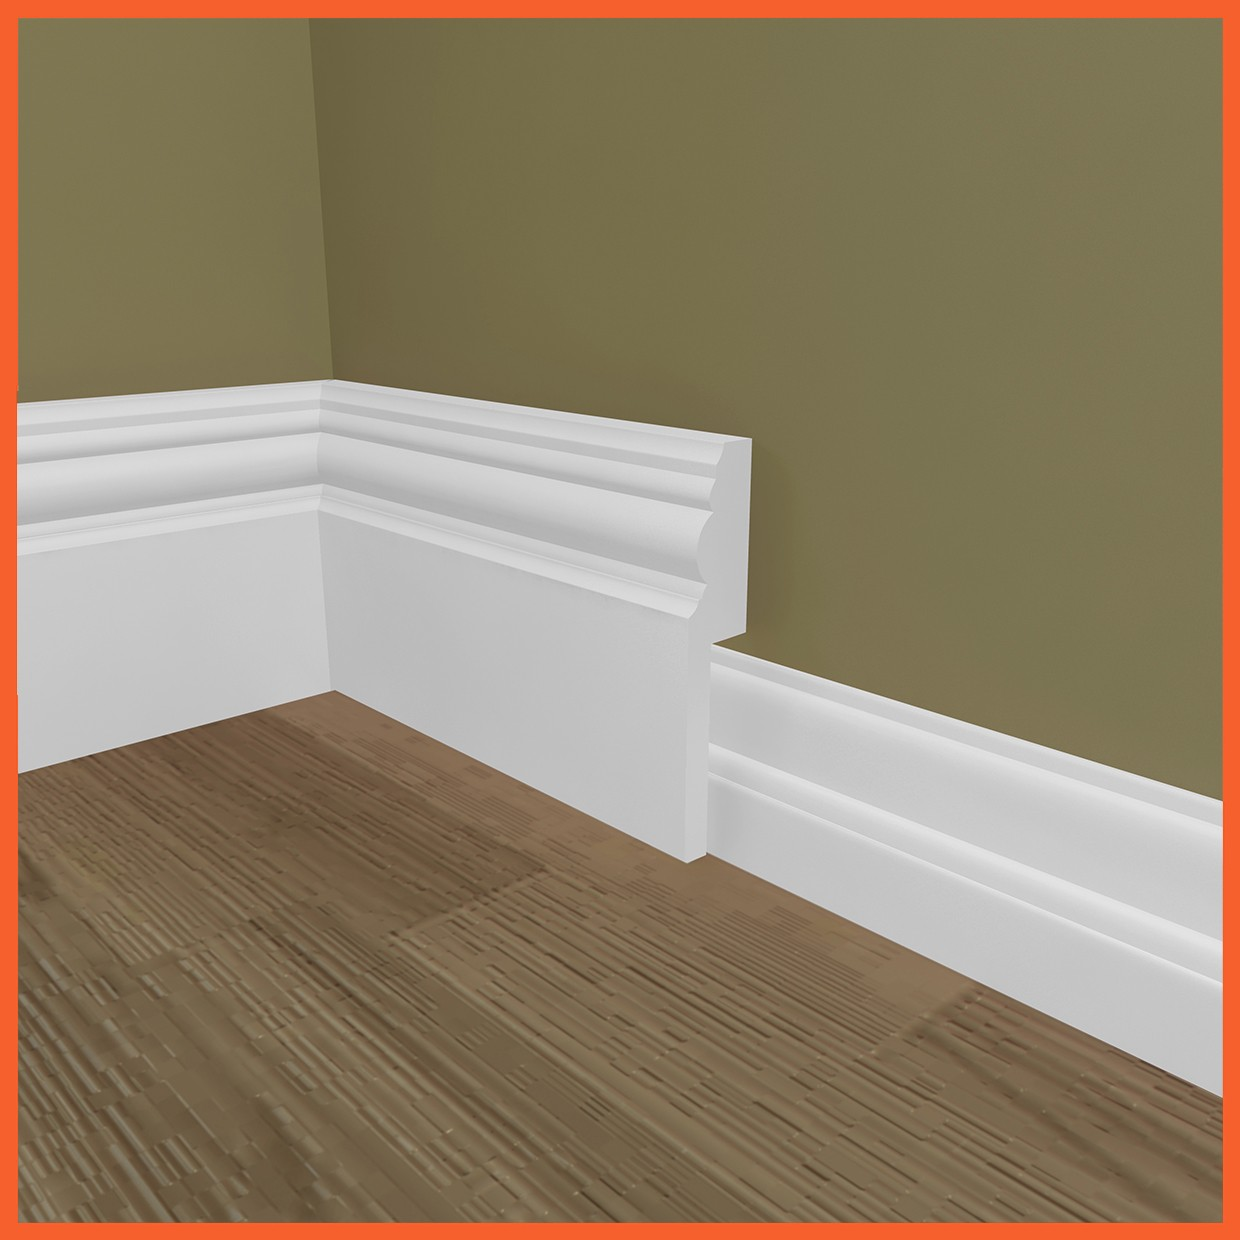 custom made mdf skirting board covers skirting over skirting rh skirting4u co uk run wires behind skirting board fitting laminate under skirting boards